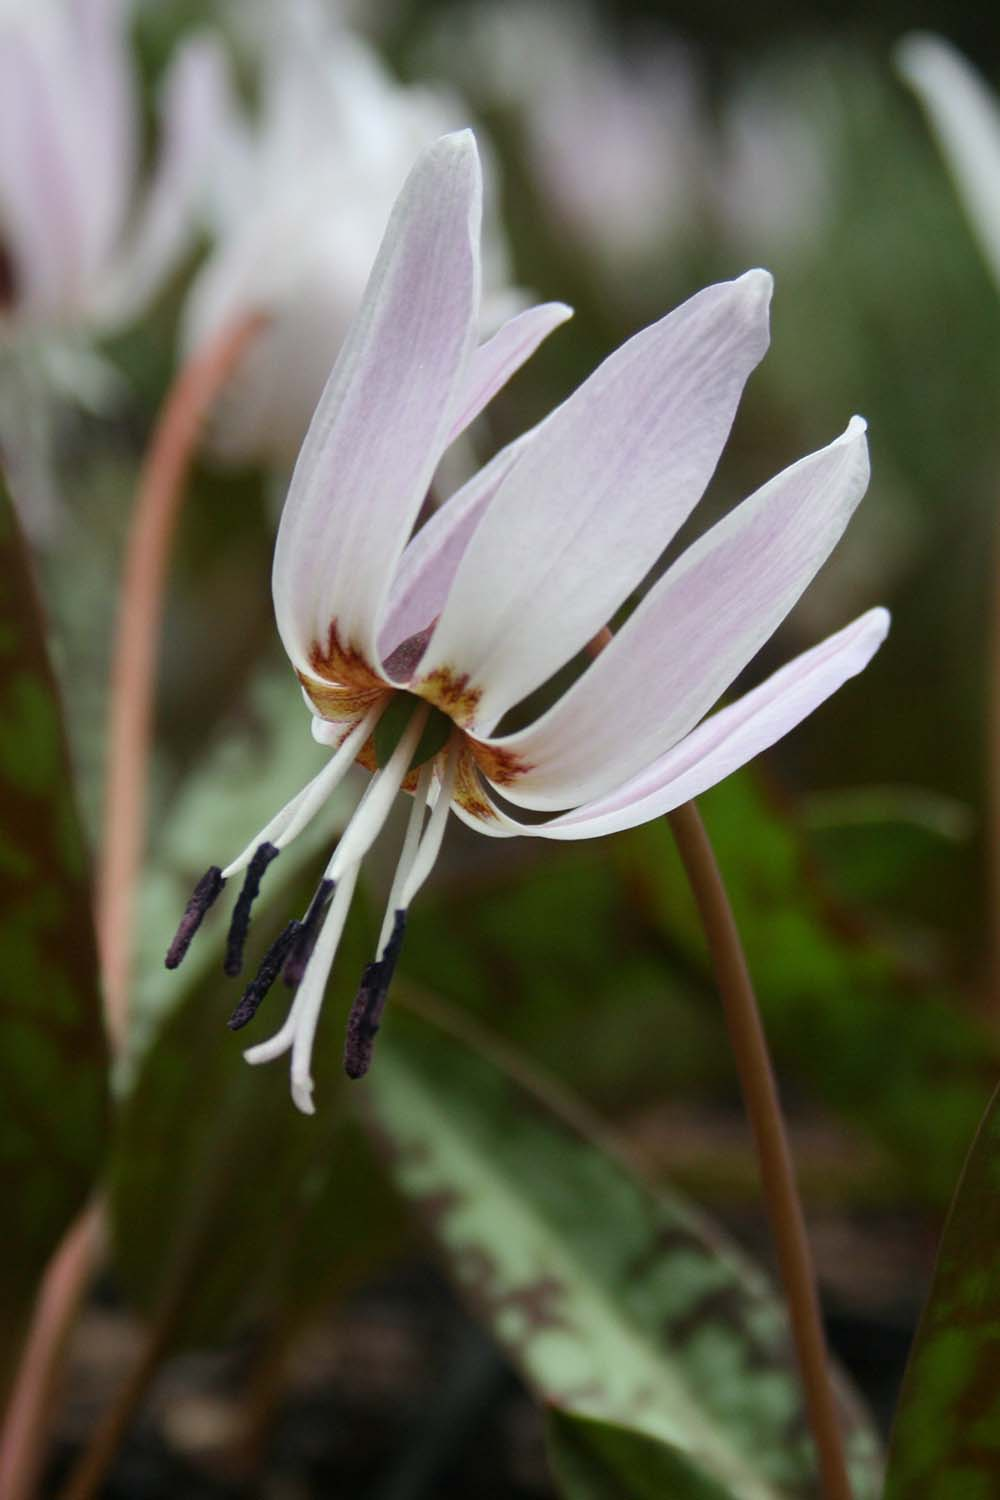 Erythronium dc 'Rose Queen'